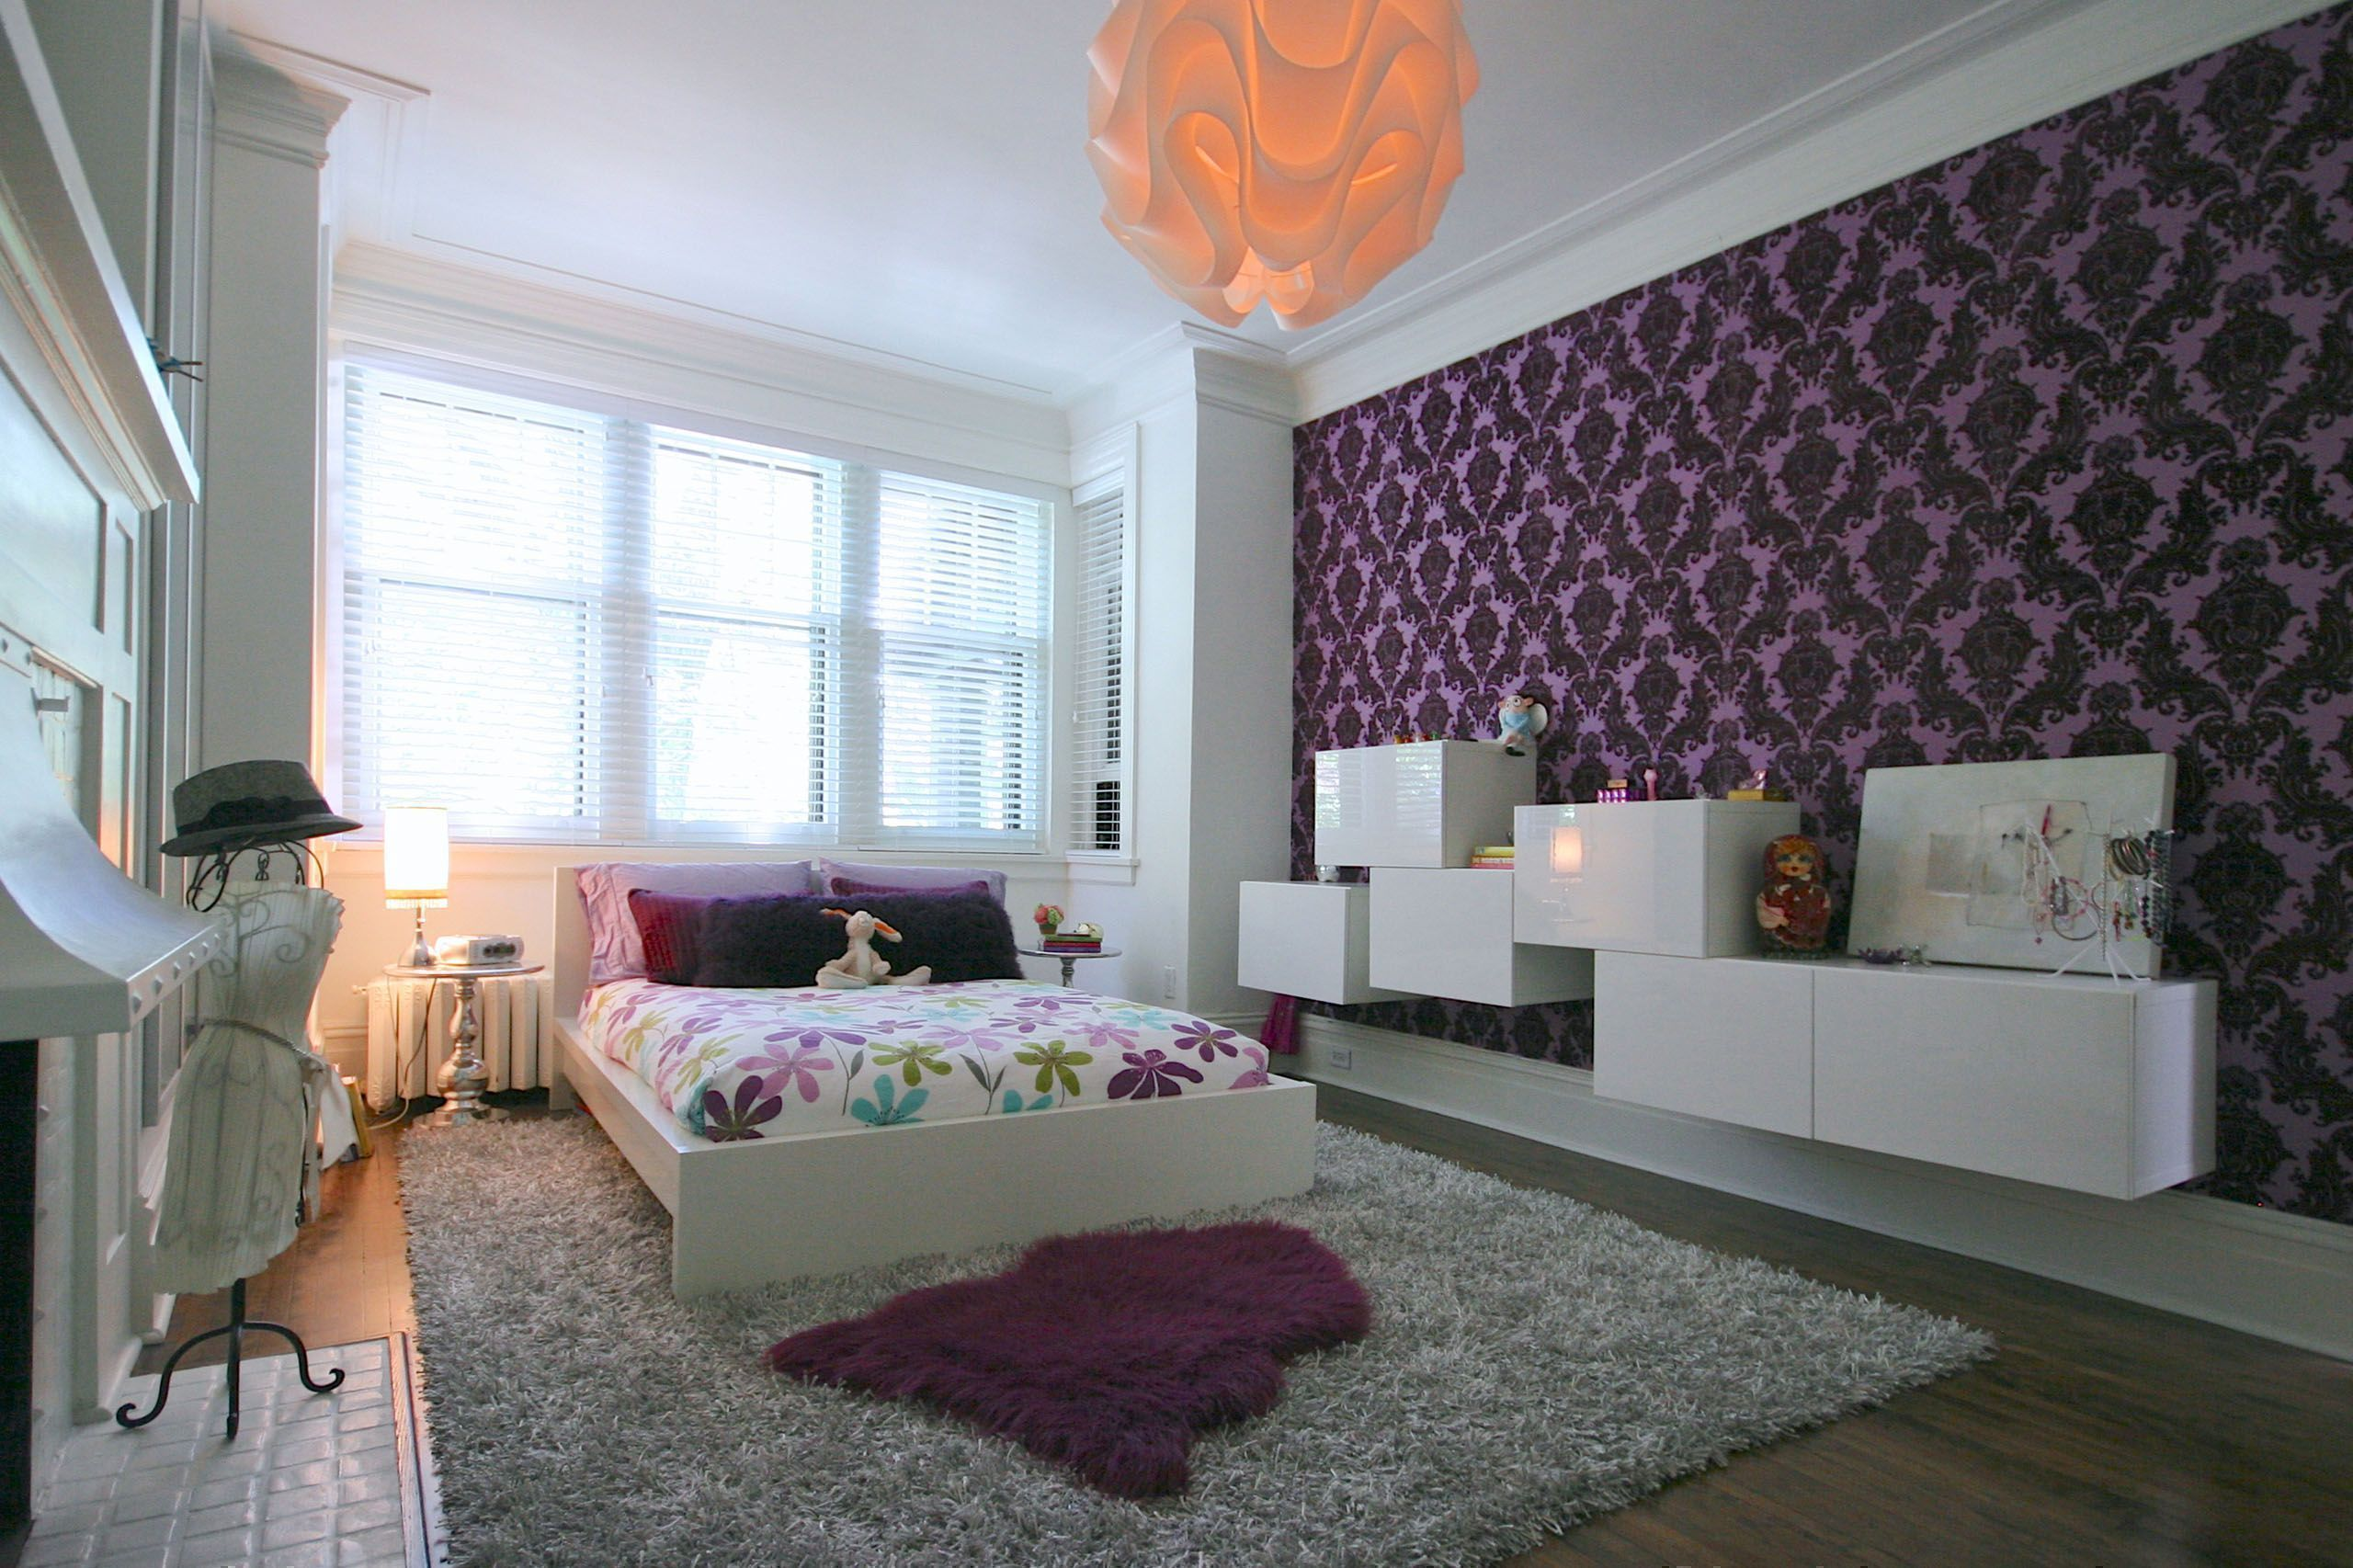 Bedroomkids Bedroom With Damask Decorating Idea Using Wallpaper And Colorful